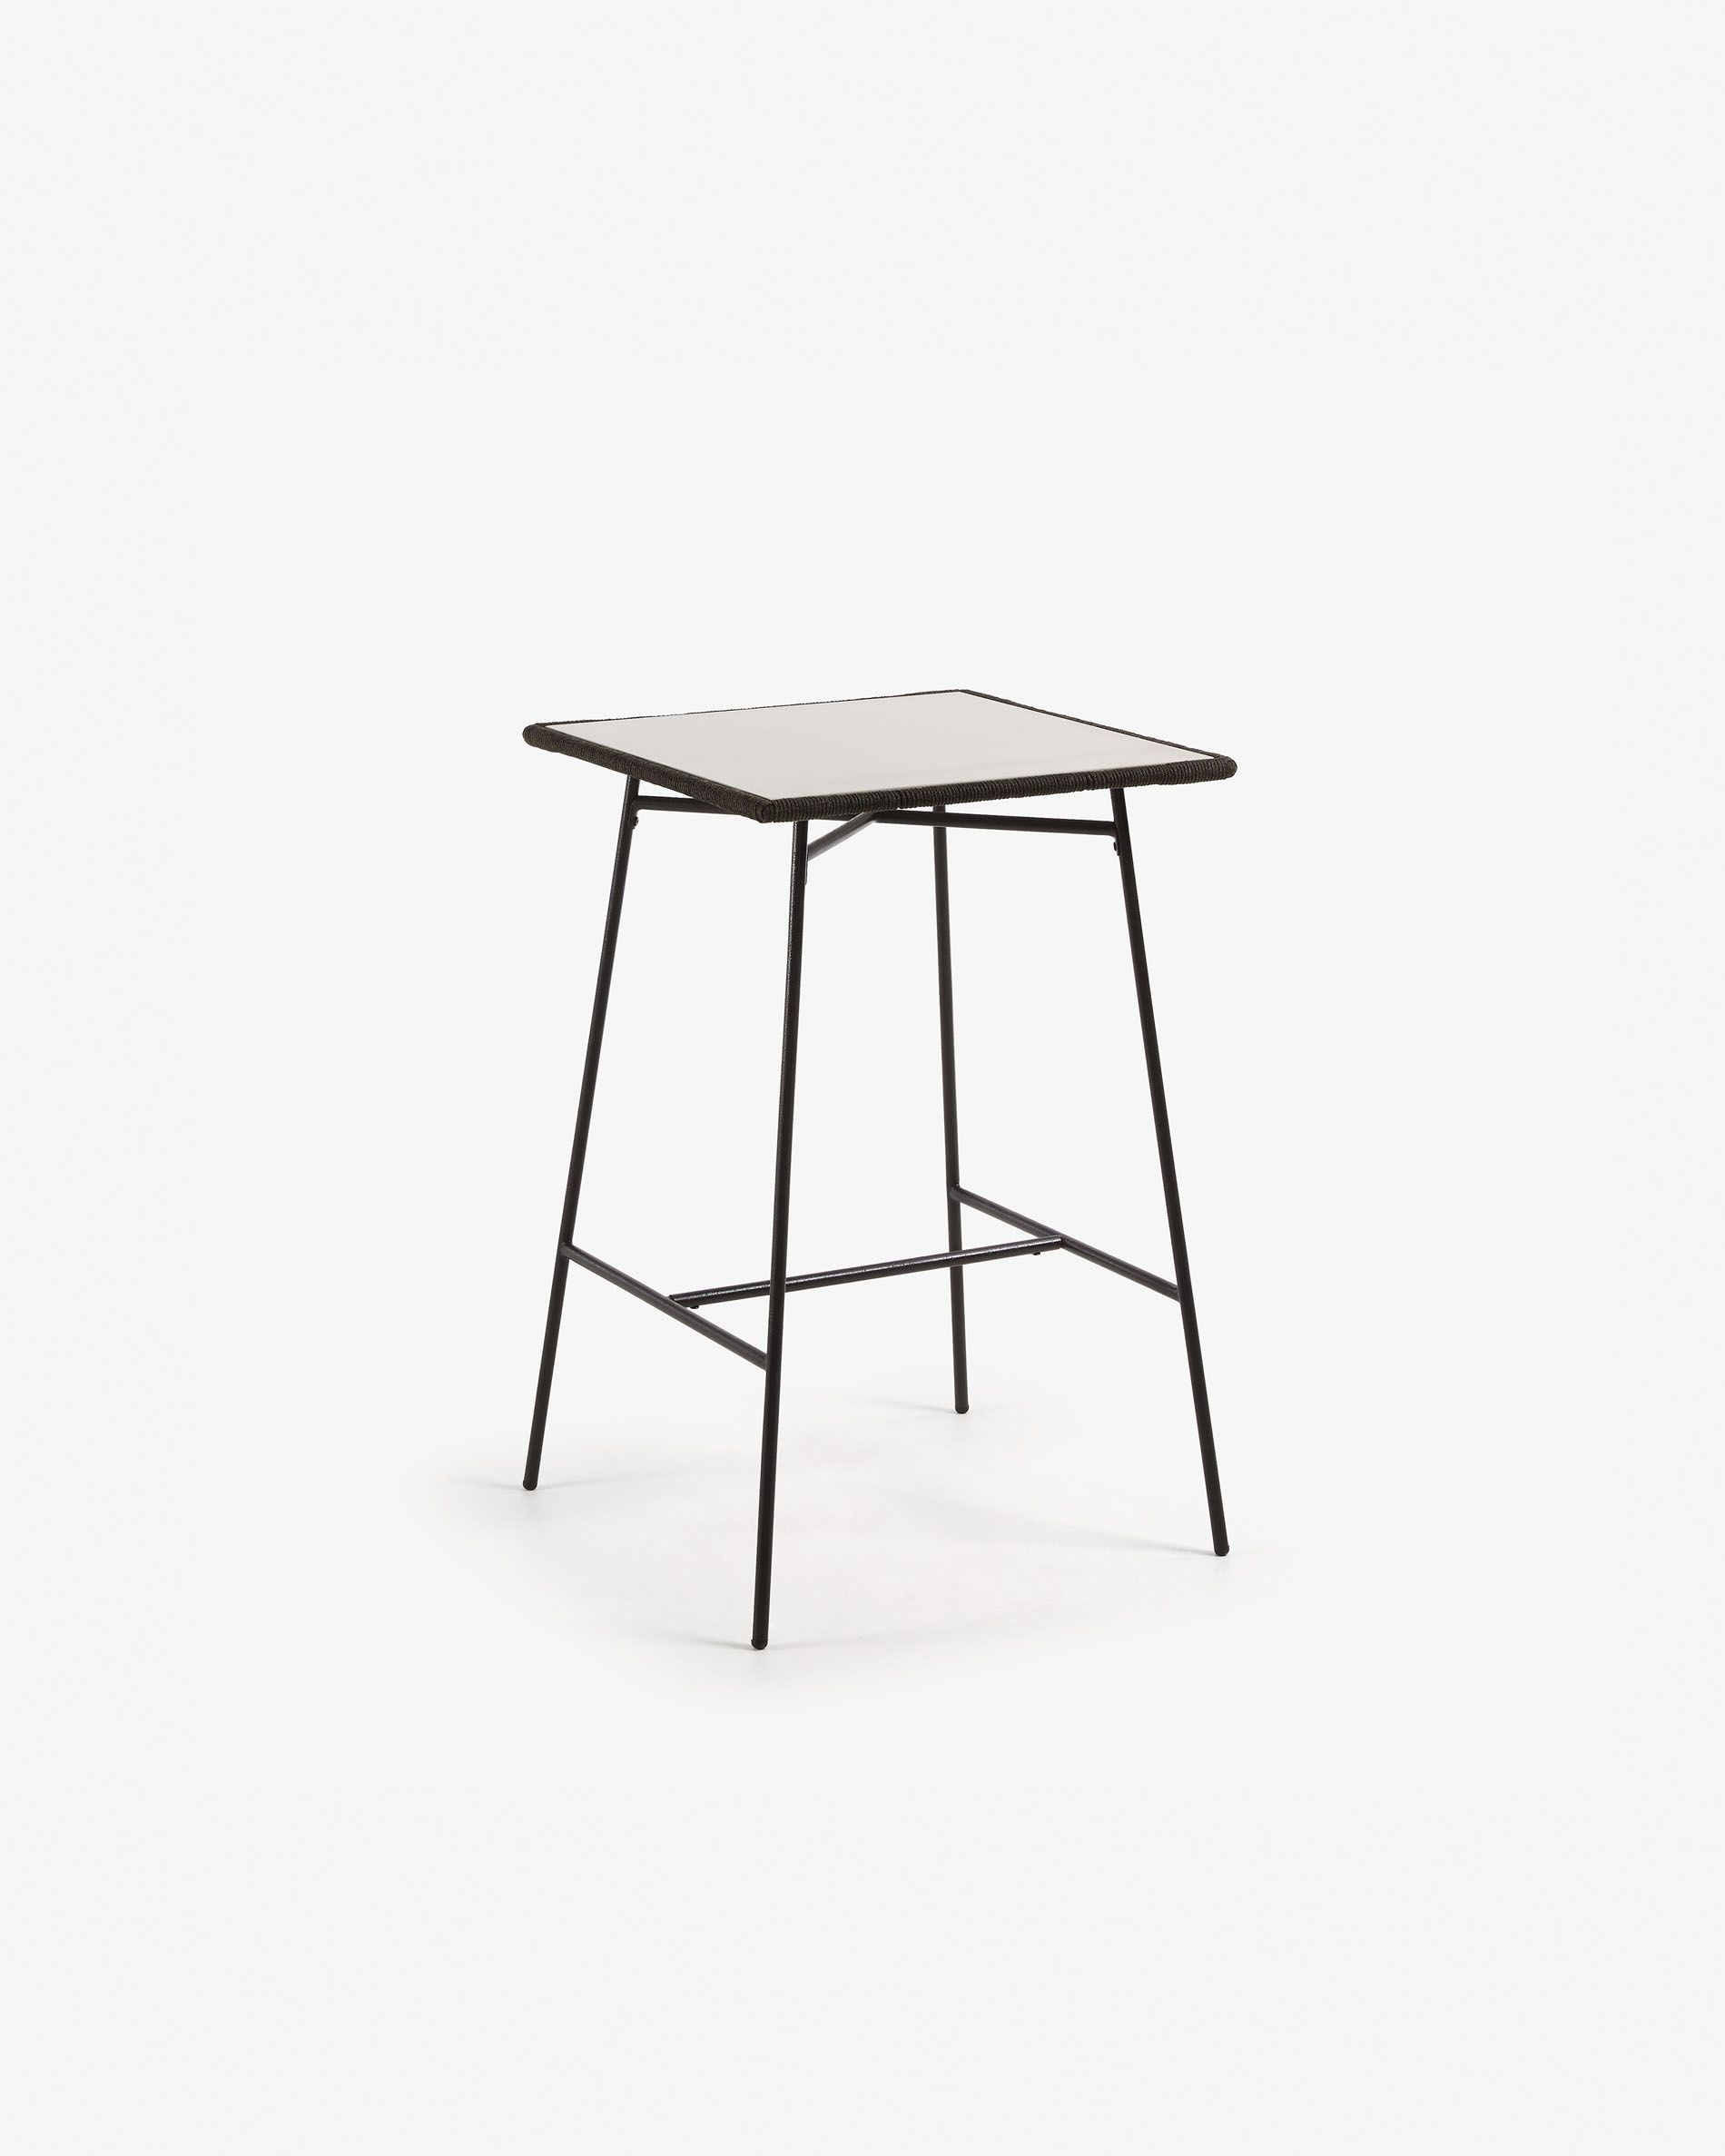 Table En Pierre Exterieur Nouveau Table Leora 70 X 70 Cm Of 39 Best Of Table En Pierre Exterieur